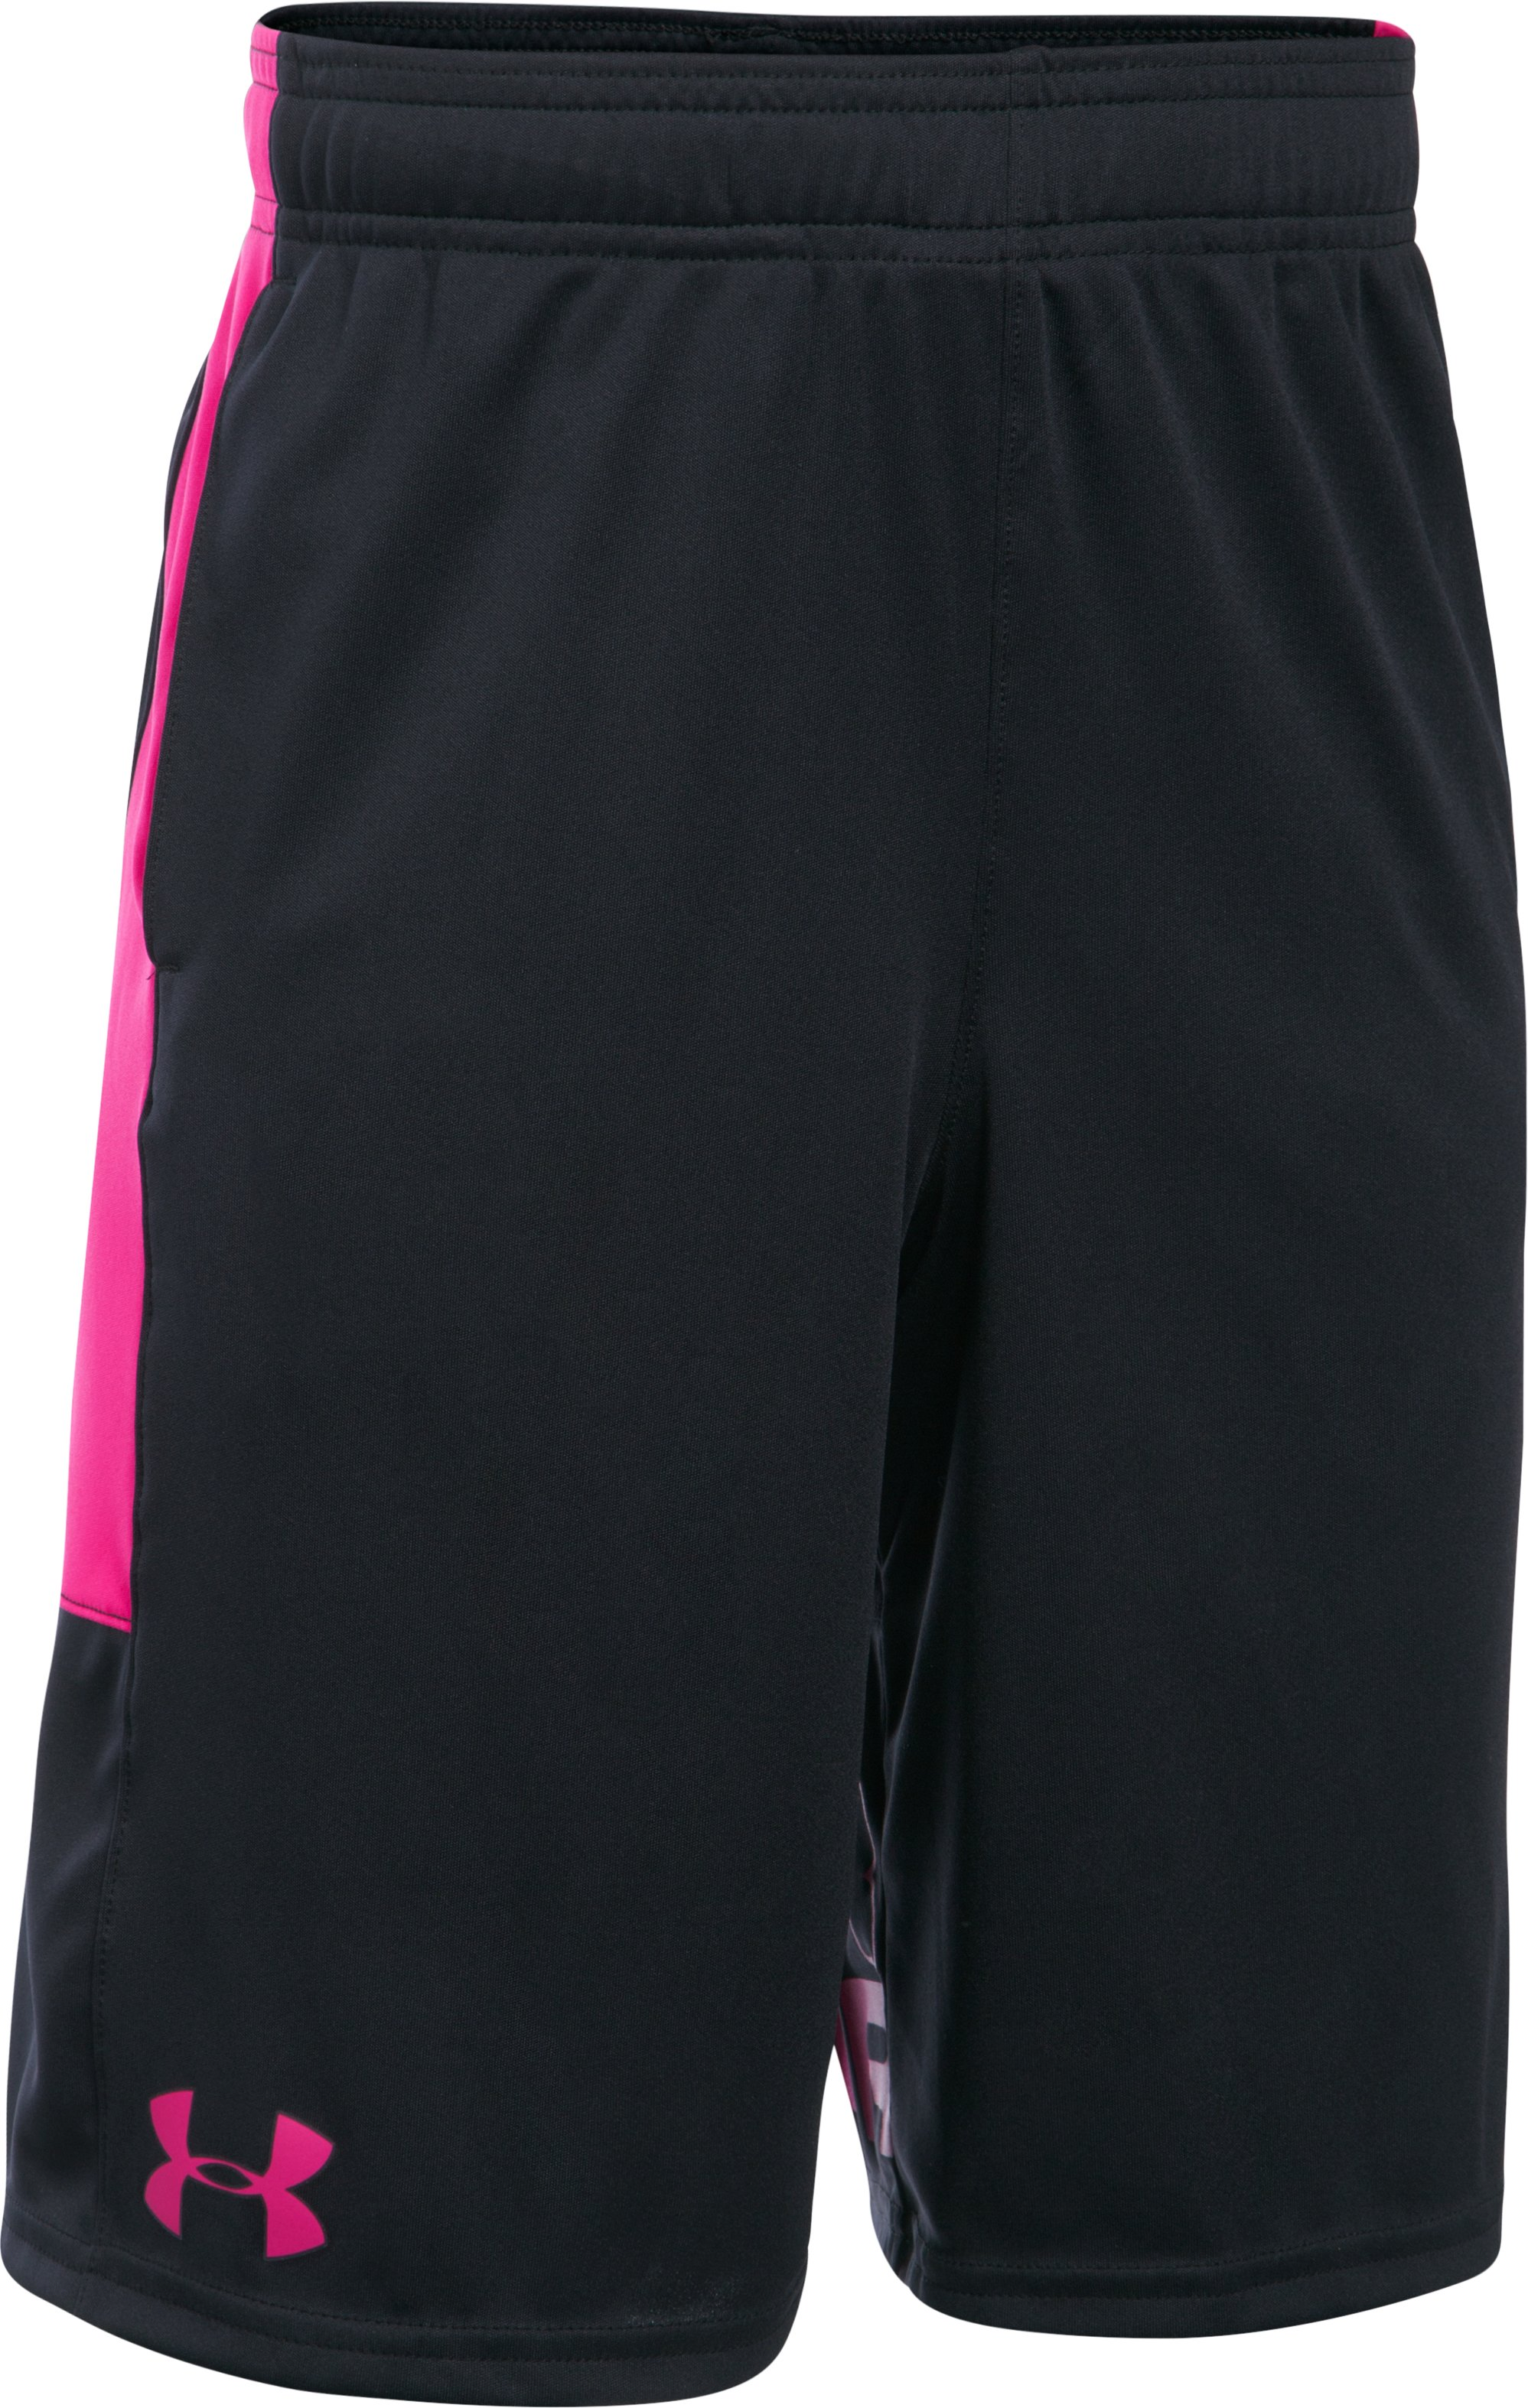 Boys' UA Stunt Shorts, Black